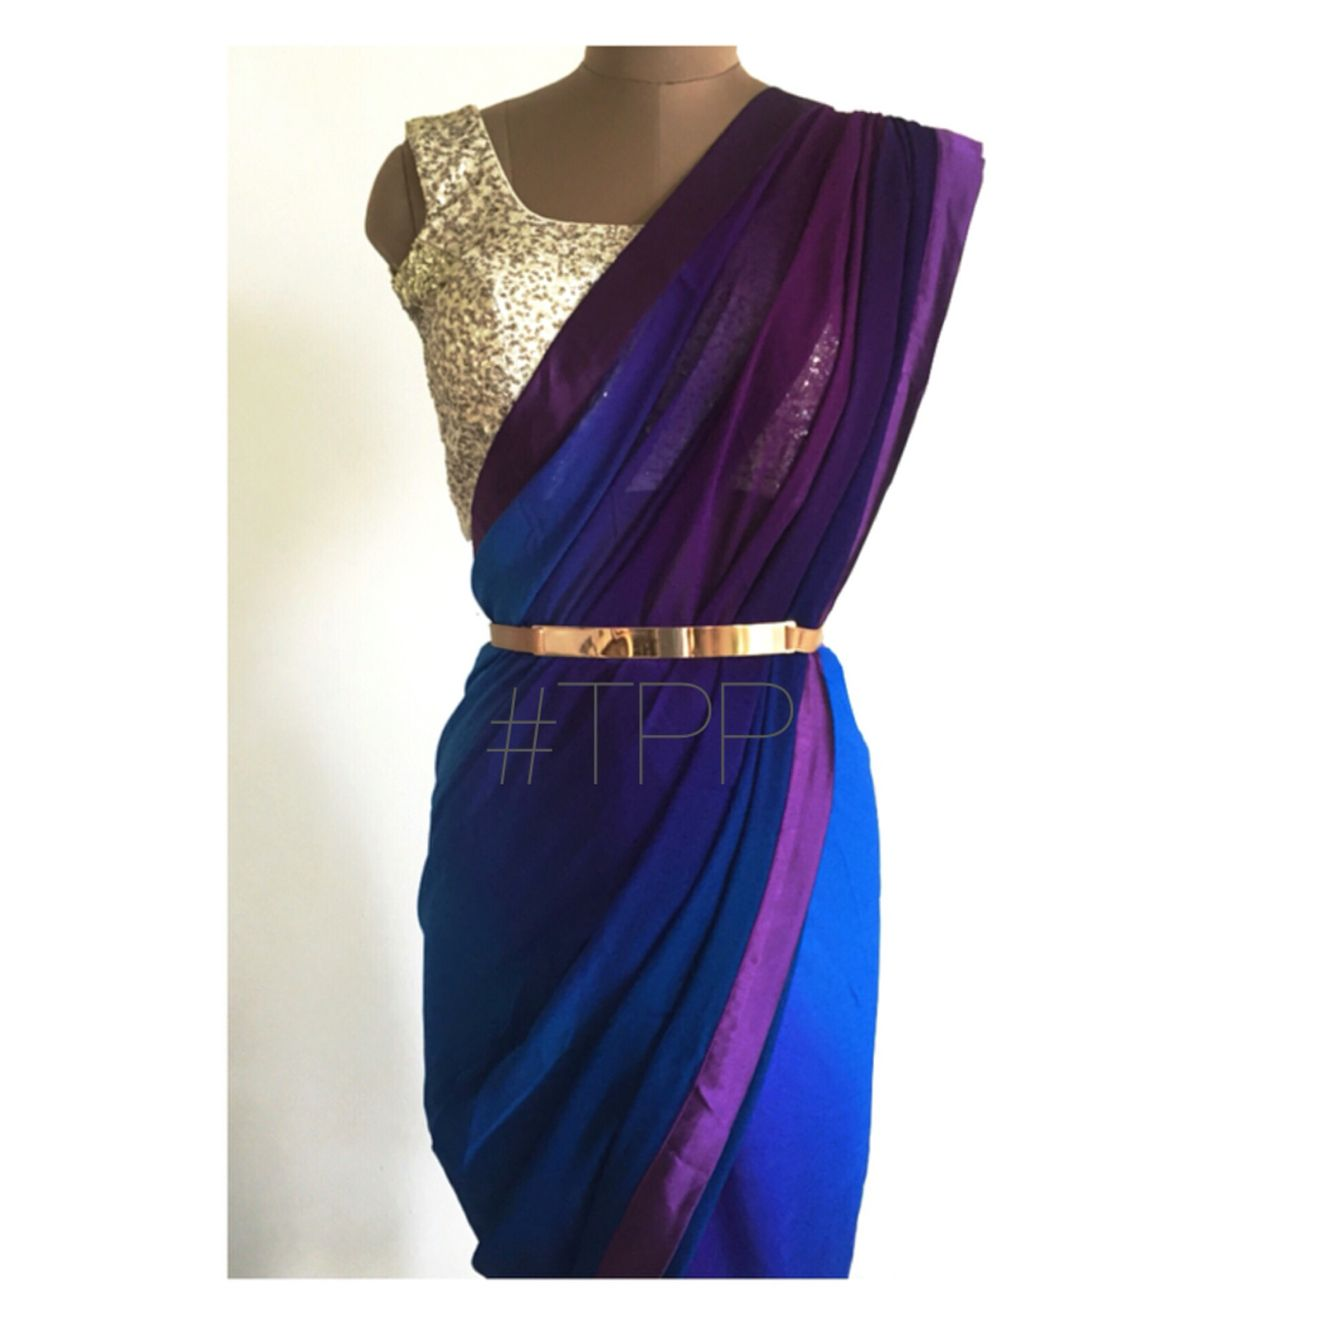 {The Night Ombré Sari}  Slaying it!  Shop on our website. Link in bio.  #ombre #blue #purple #sari #thepeachproject #indianfashion #desistyle #saristyle #sariblouse #americandesi #indiansummer #indianfashion #indianwedding #desibridesmaids #torontolife #californiagirls #dubaidesigner #bollywood #trousseau #sangeet #cocktail